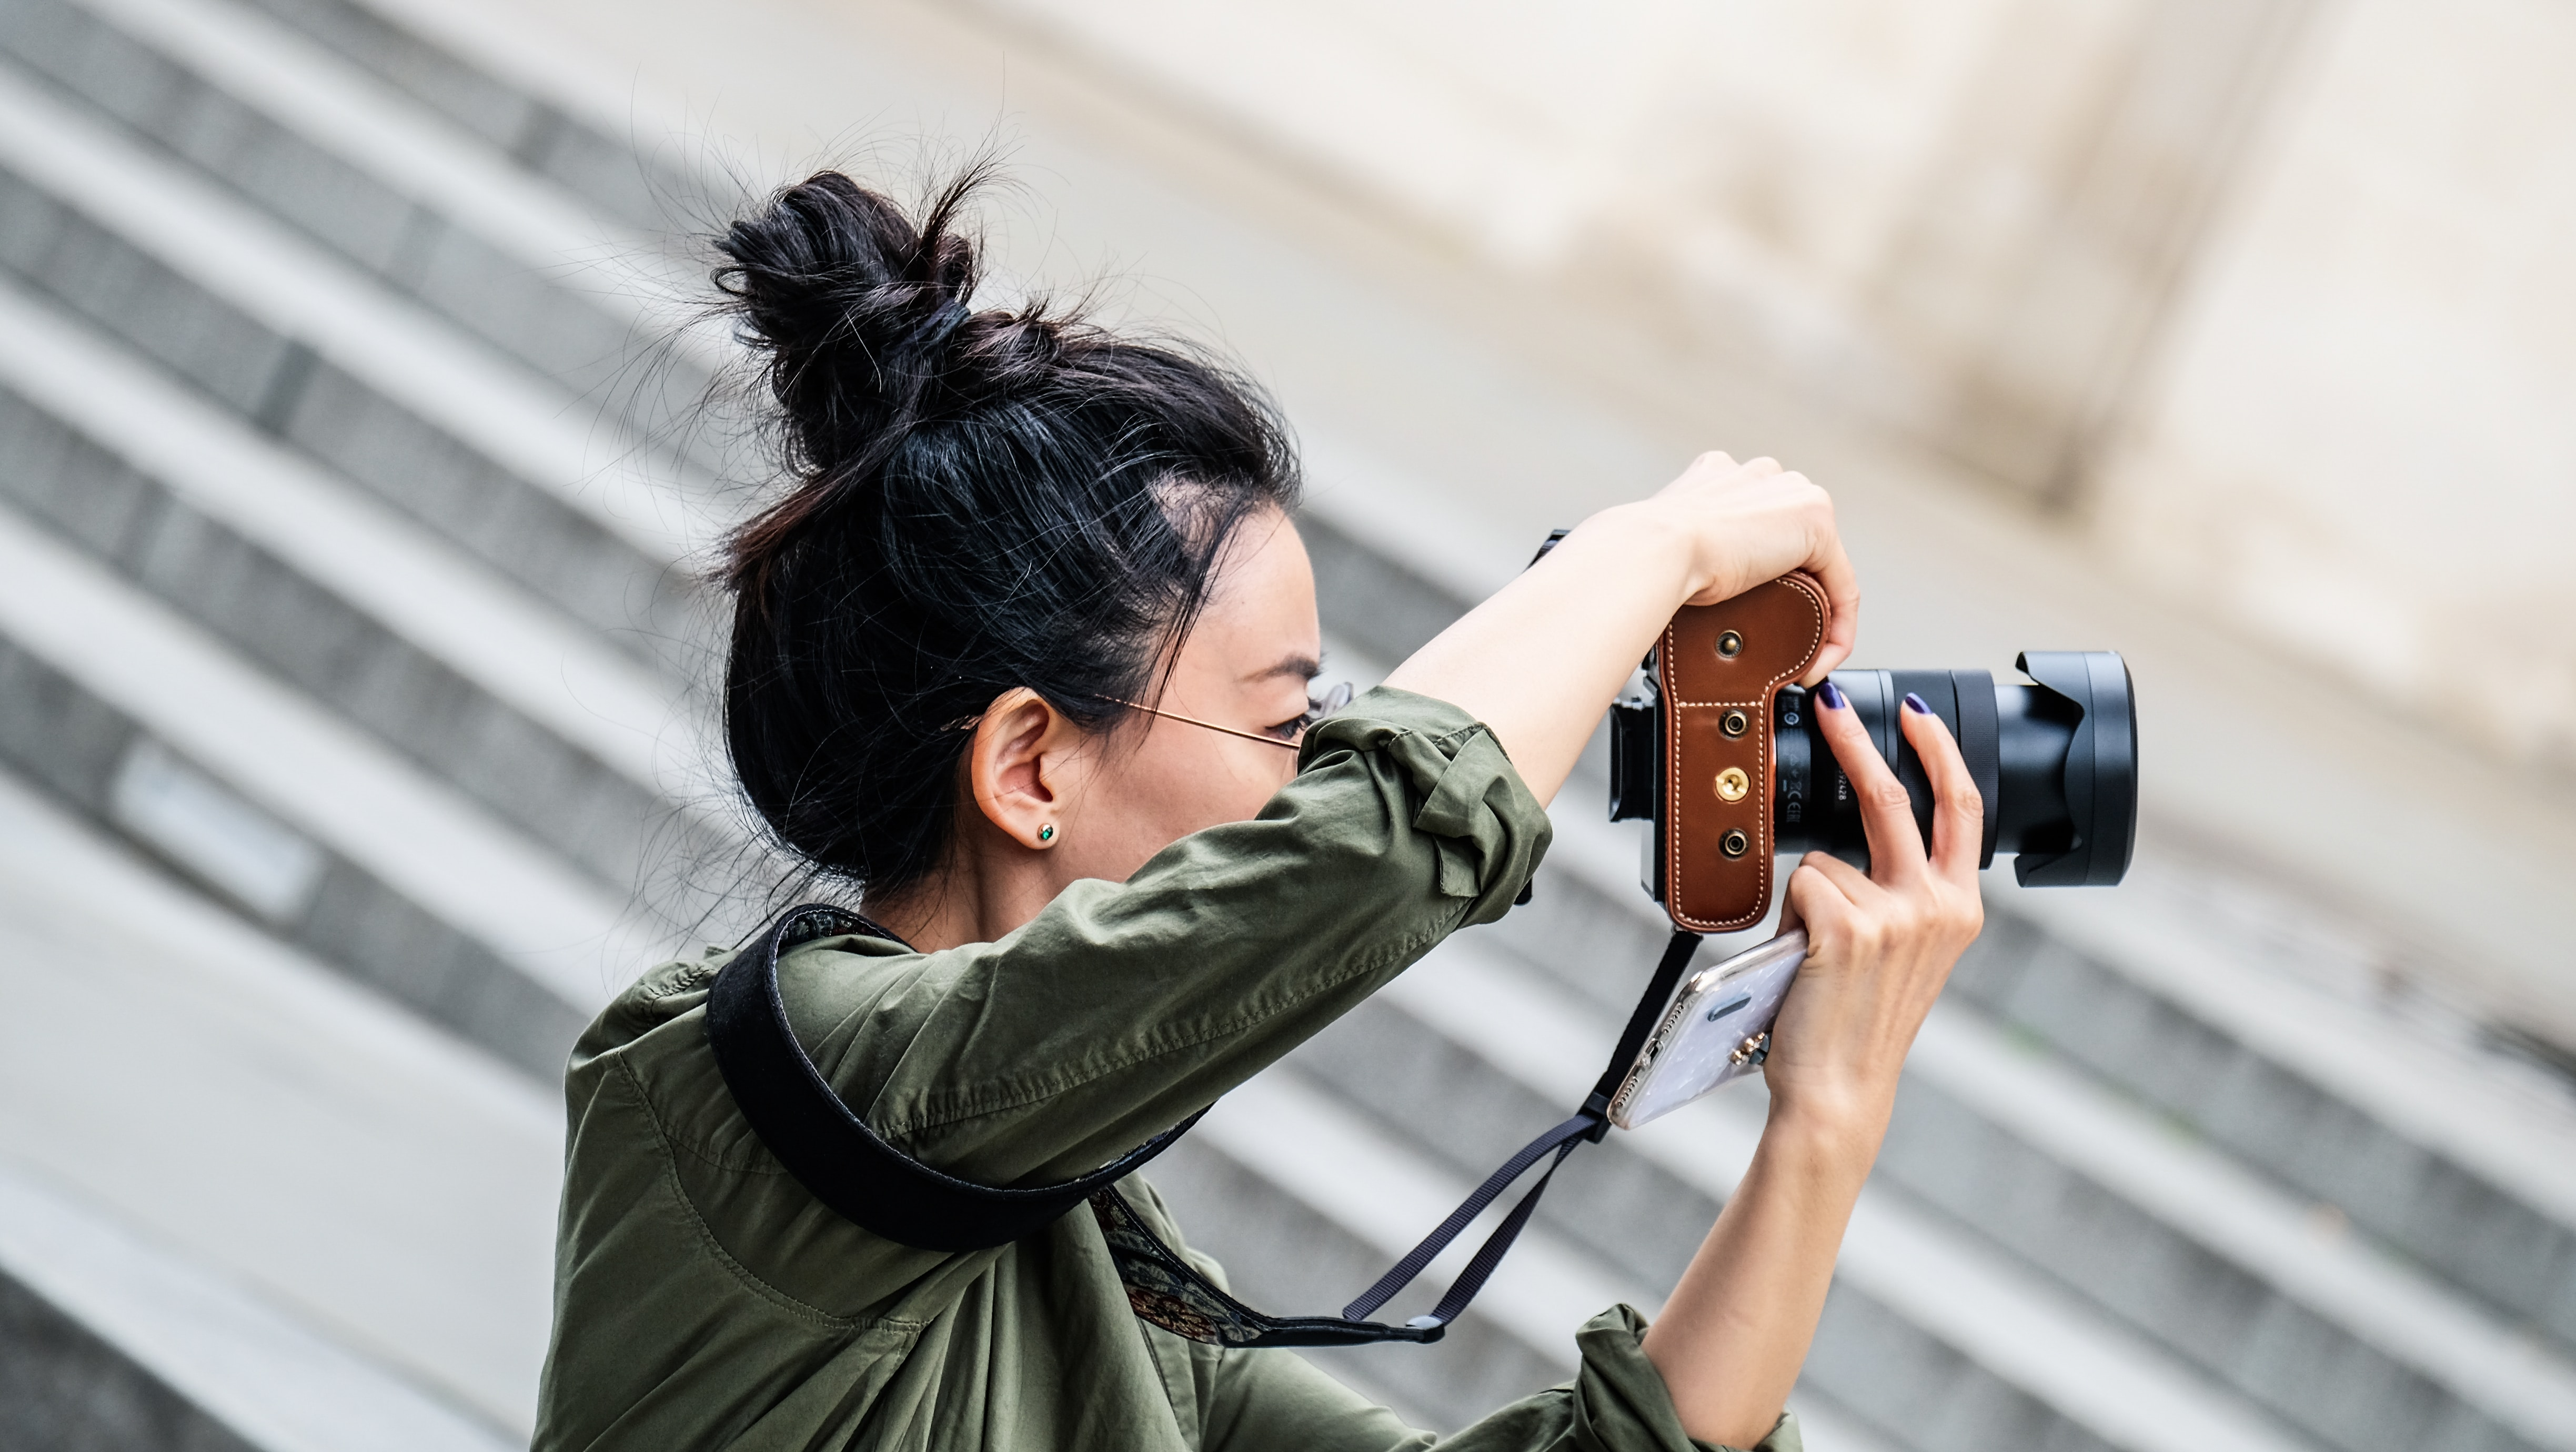 Comment devenir photographe à Paris